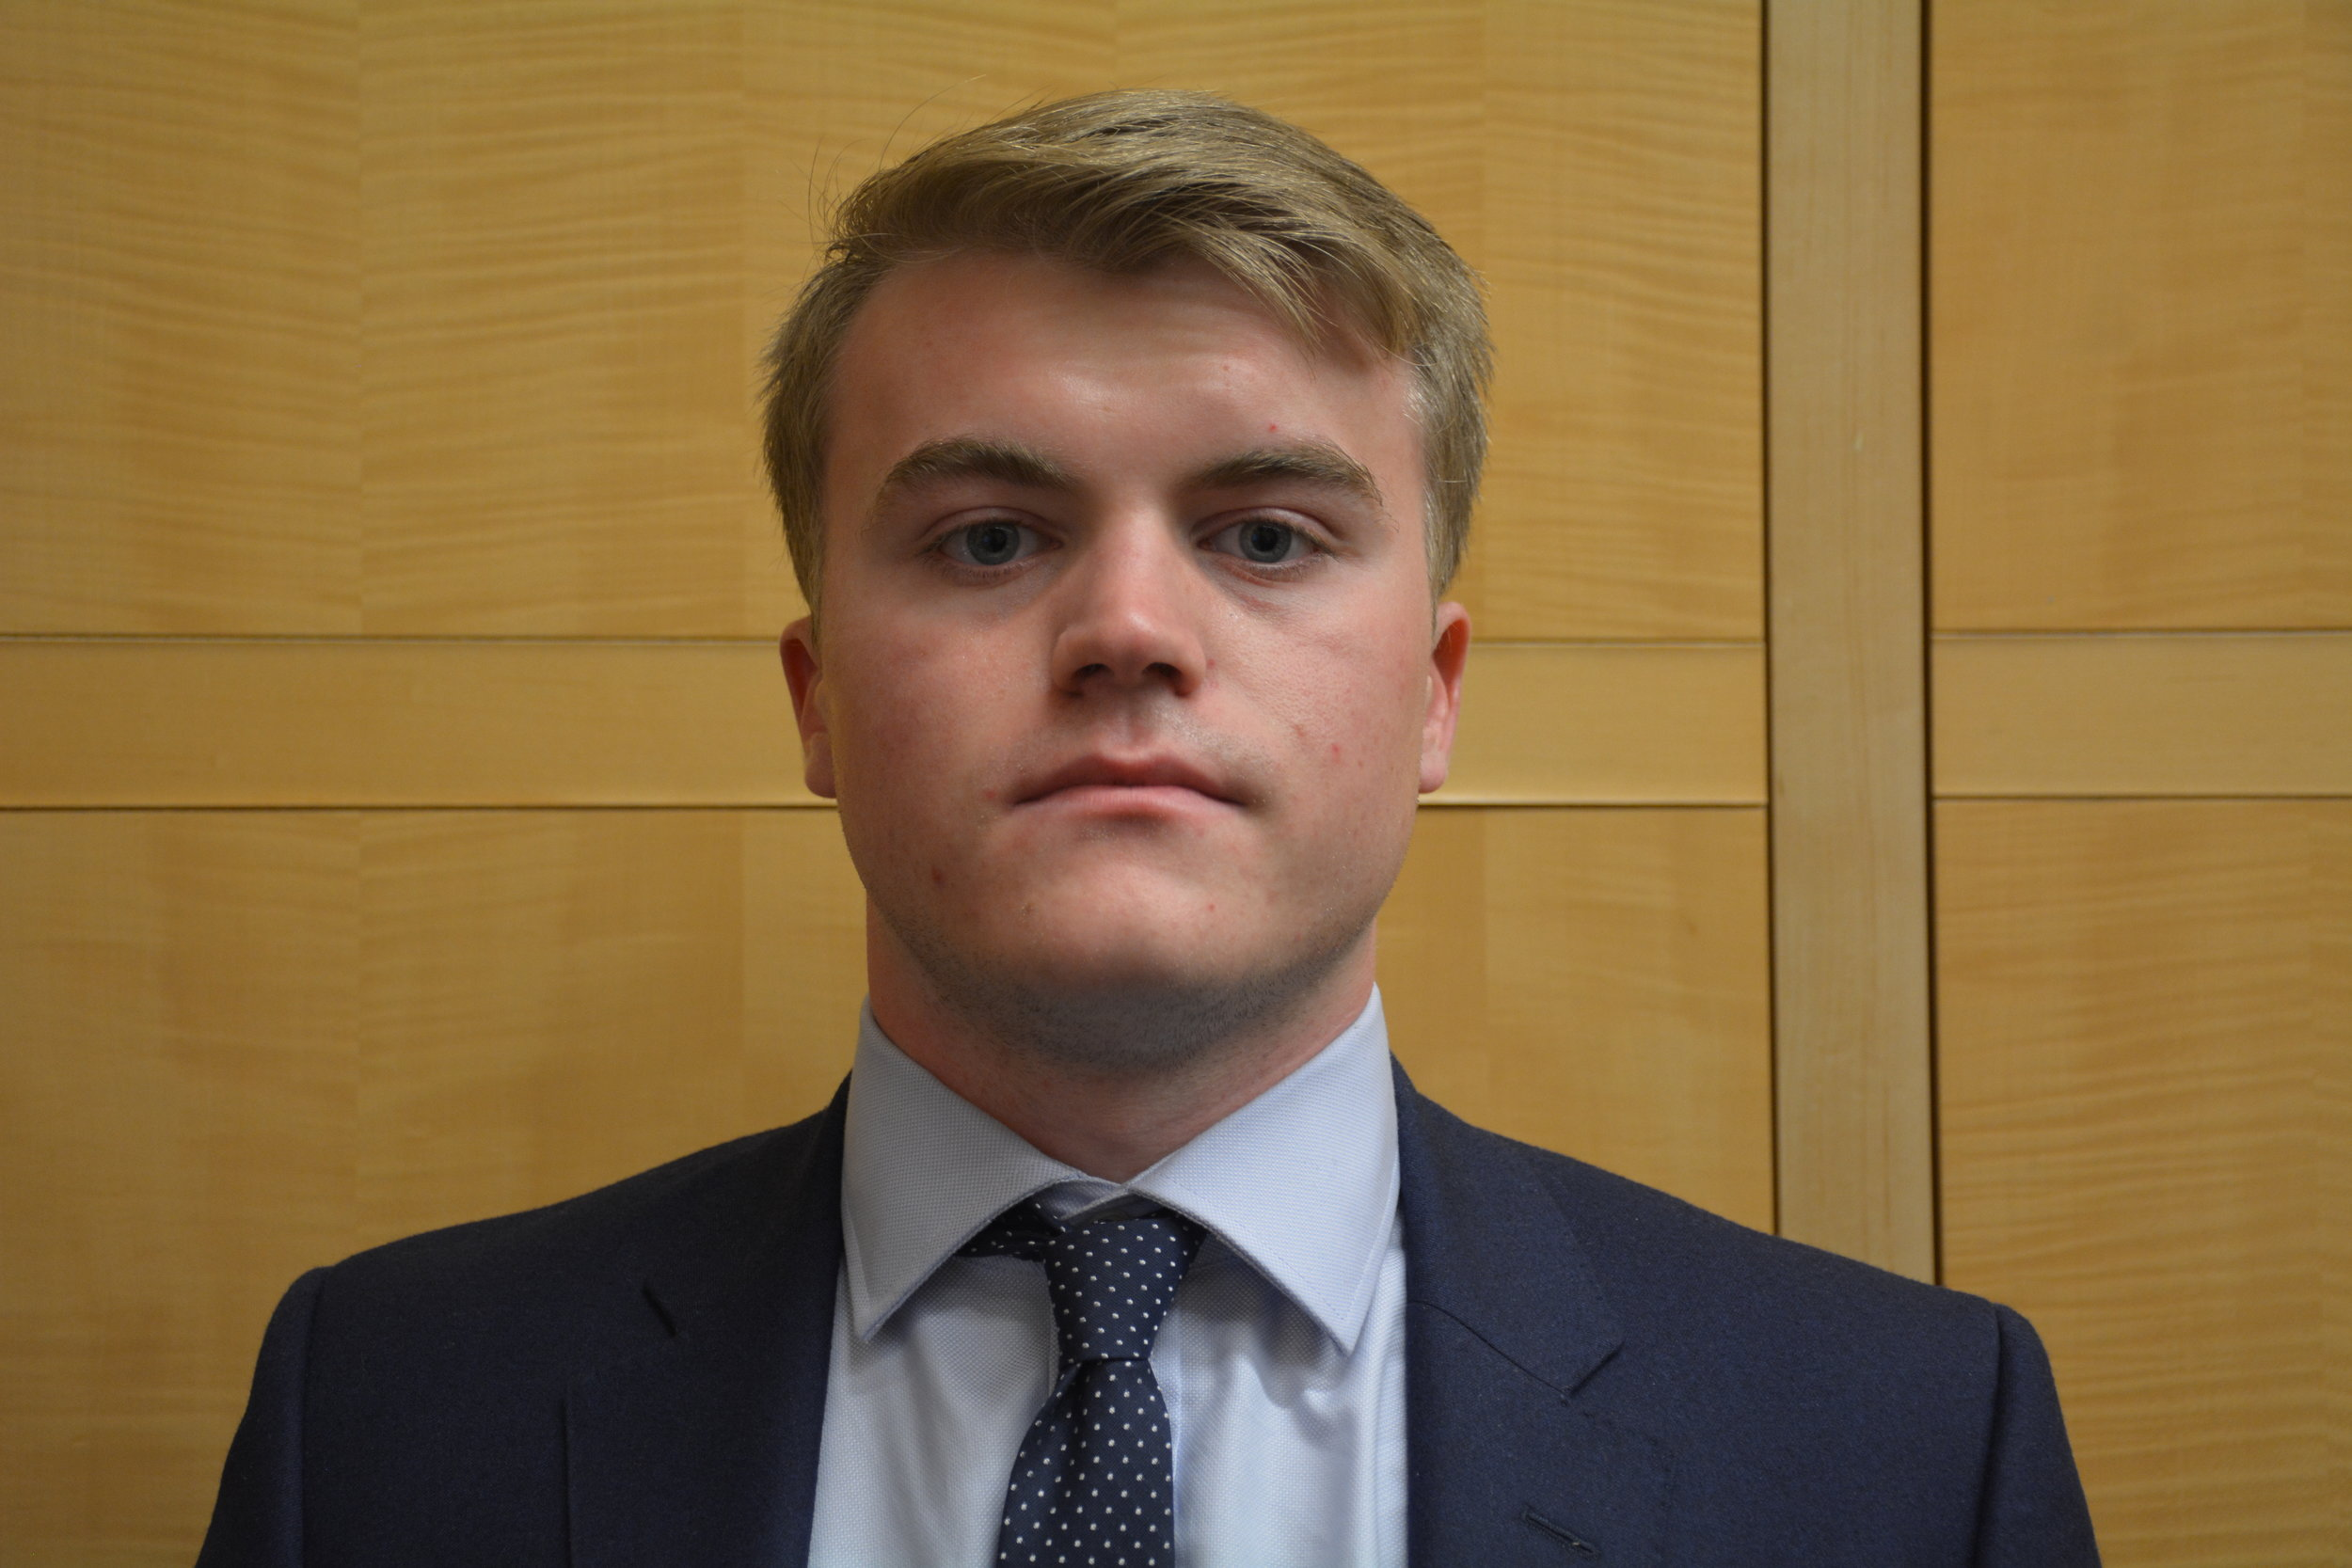 Hamish MacDiarmid '19 - The government and business major combines my interest in politics and learning about finance. I joined CBR as i enjoy the breadth of knowledge that I gain from my fellow club members.